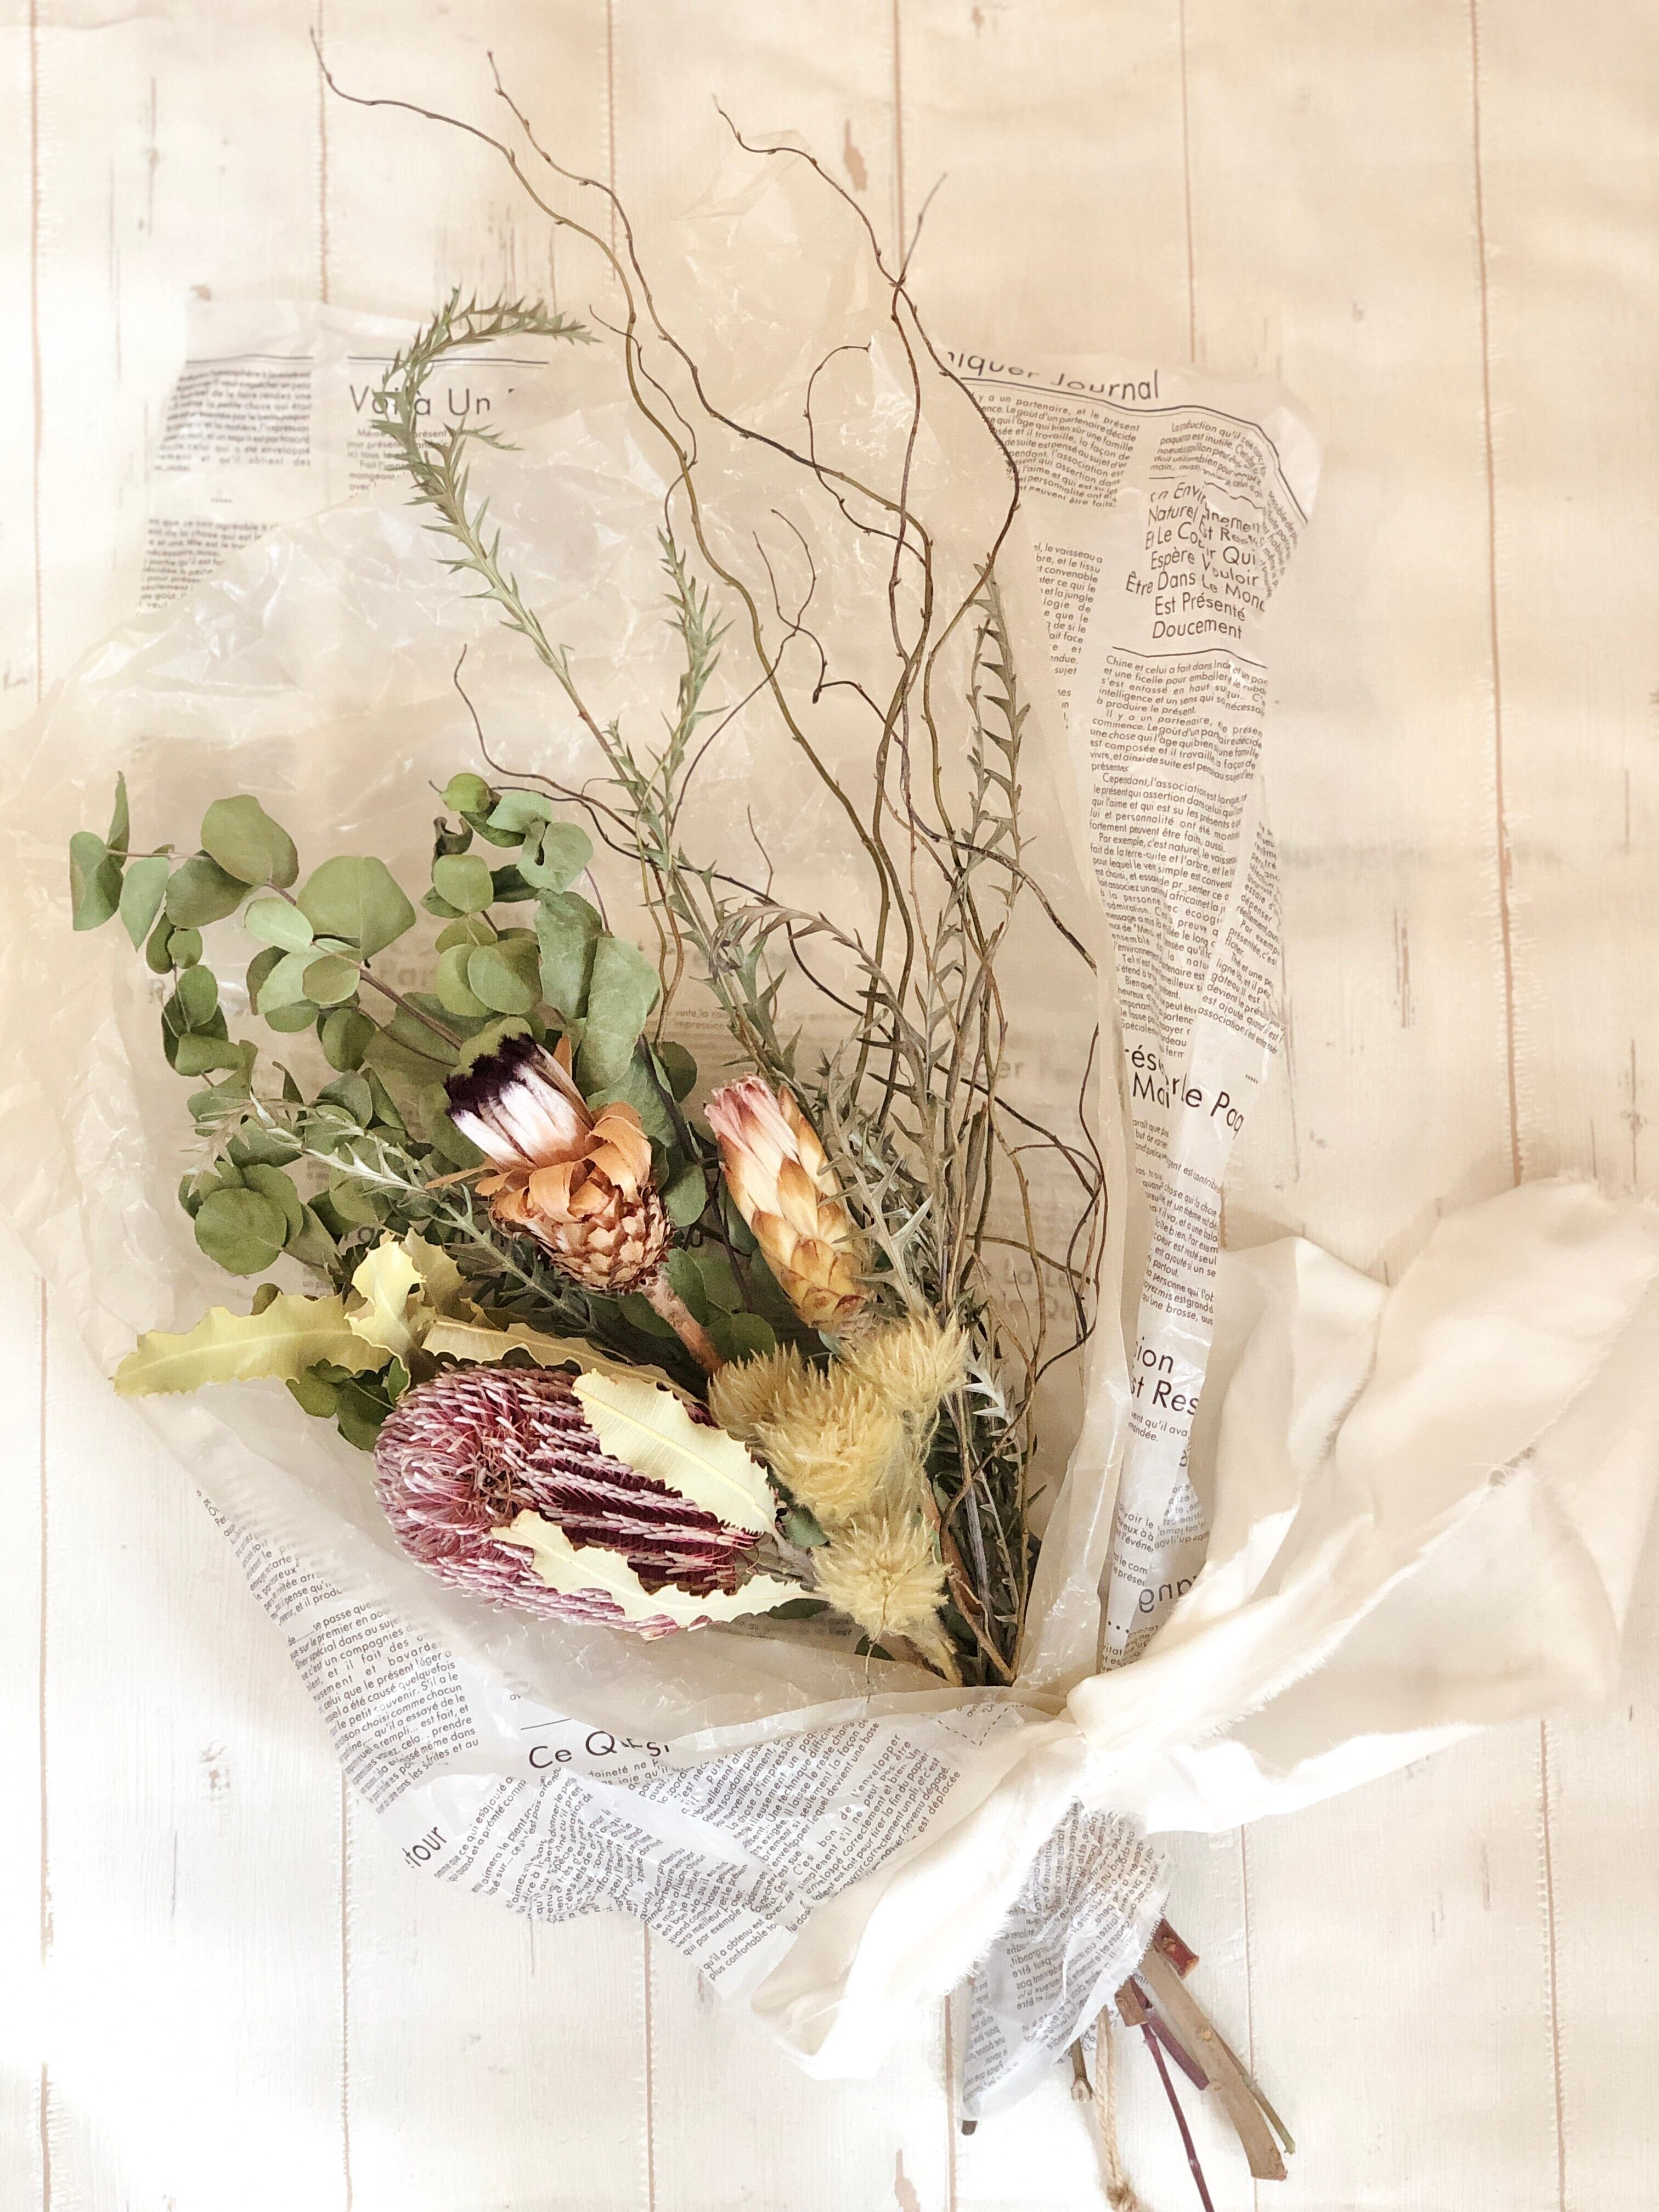 (Re:II) 限定商品 / Dried Flower スワッグType:E